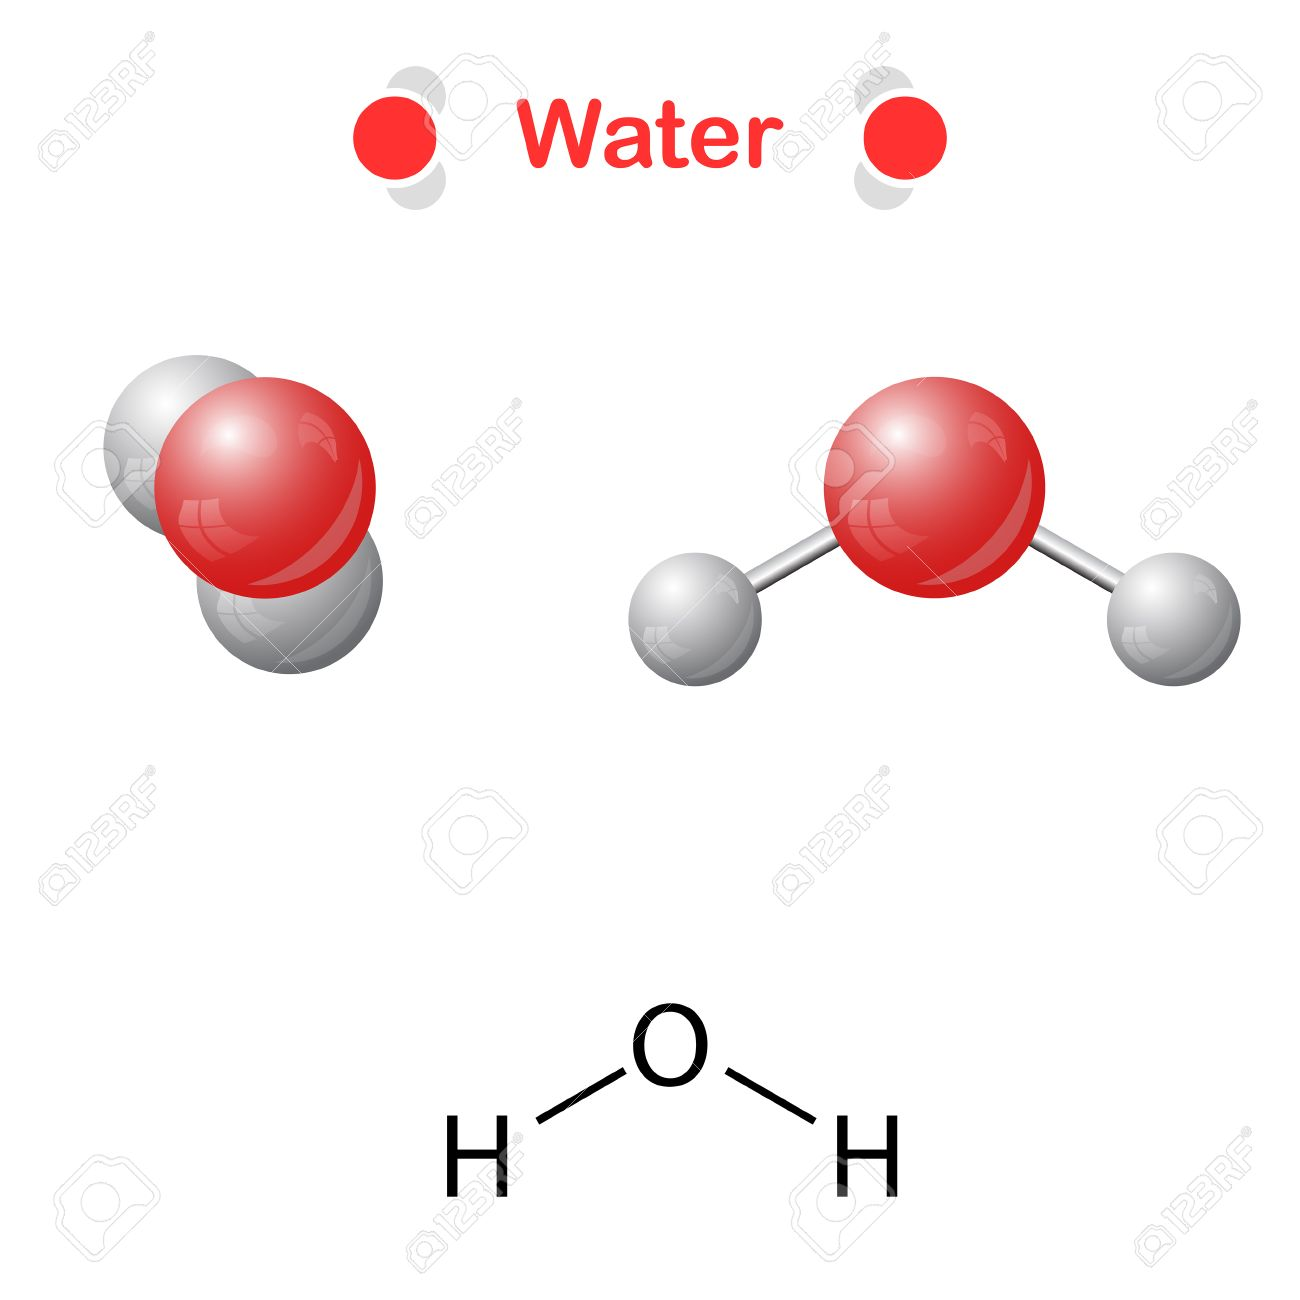 Water molecule icon and chemical formula h2o 2d 3d water molecule icon and chemical formula h2o 2d 3d illustration isalated buycottarizona Choice Image